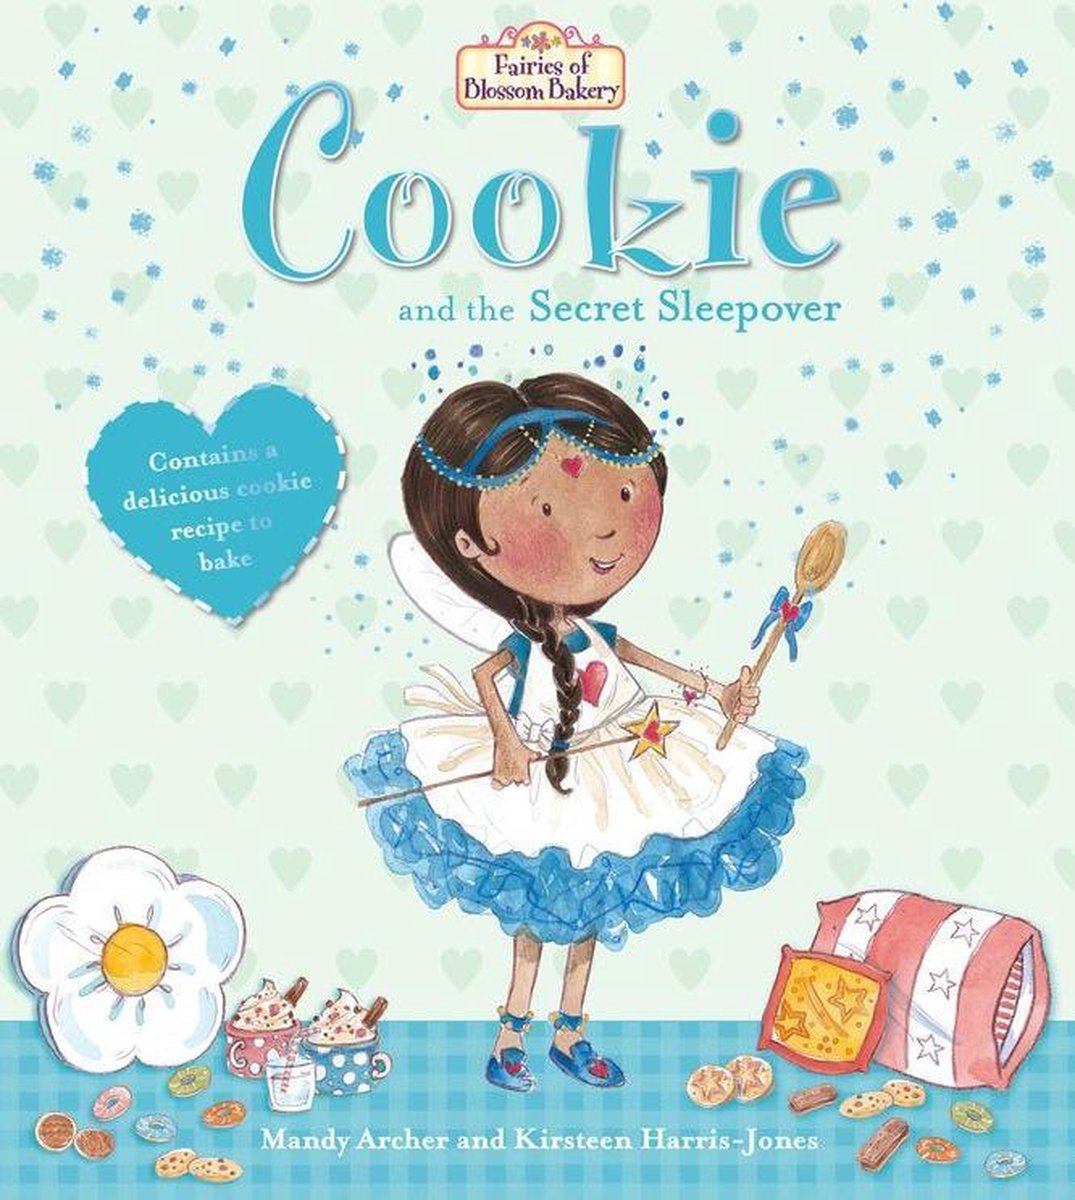 Fairies of Blossom Bakery: Cookie and the Secret Sleepover